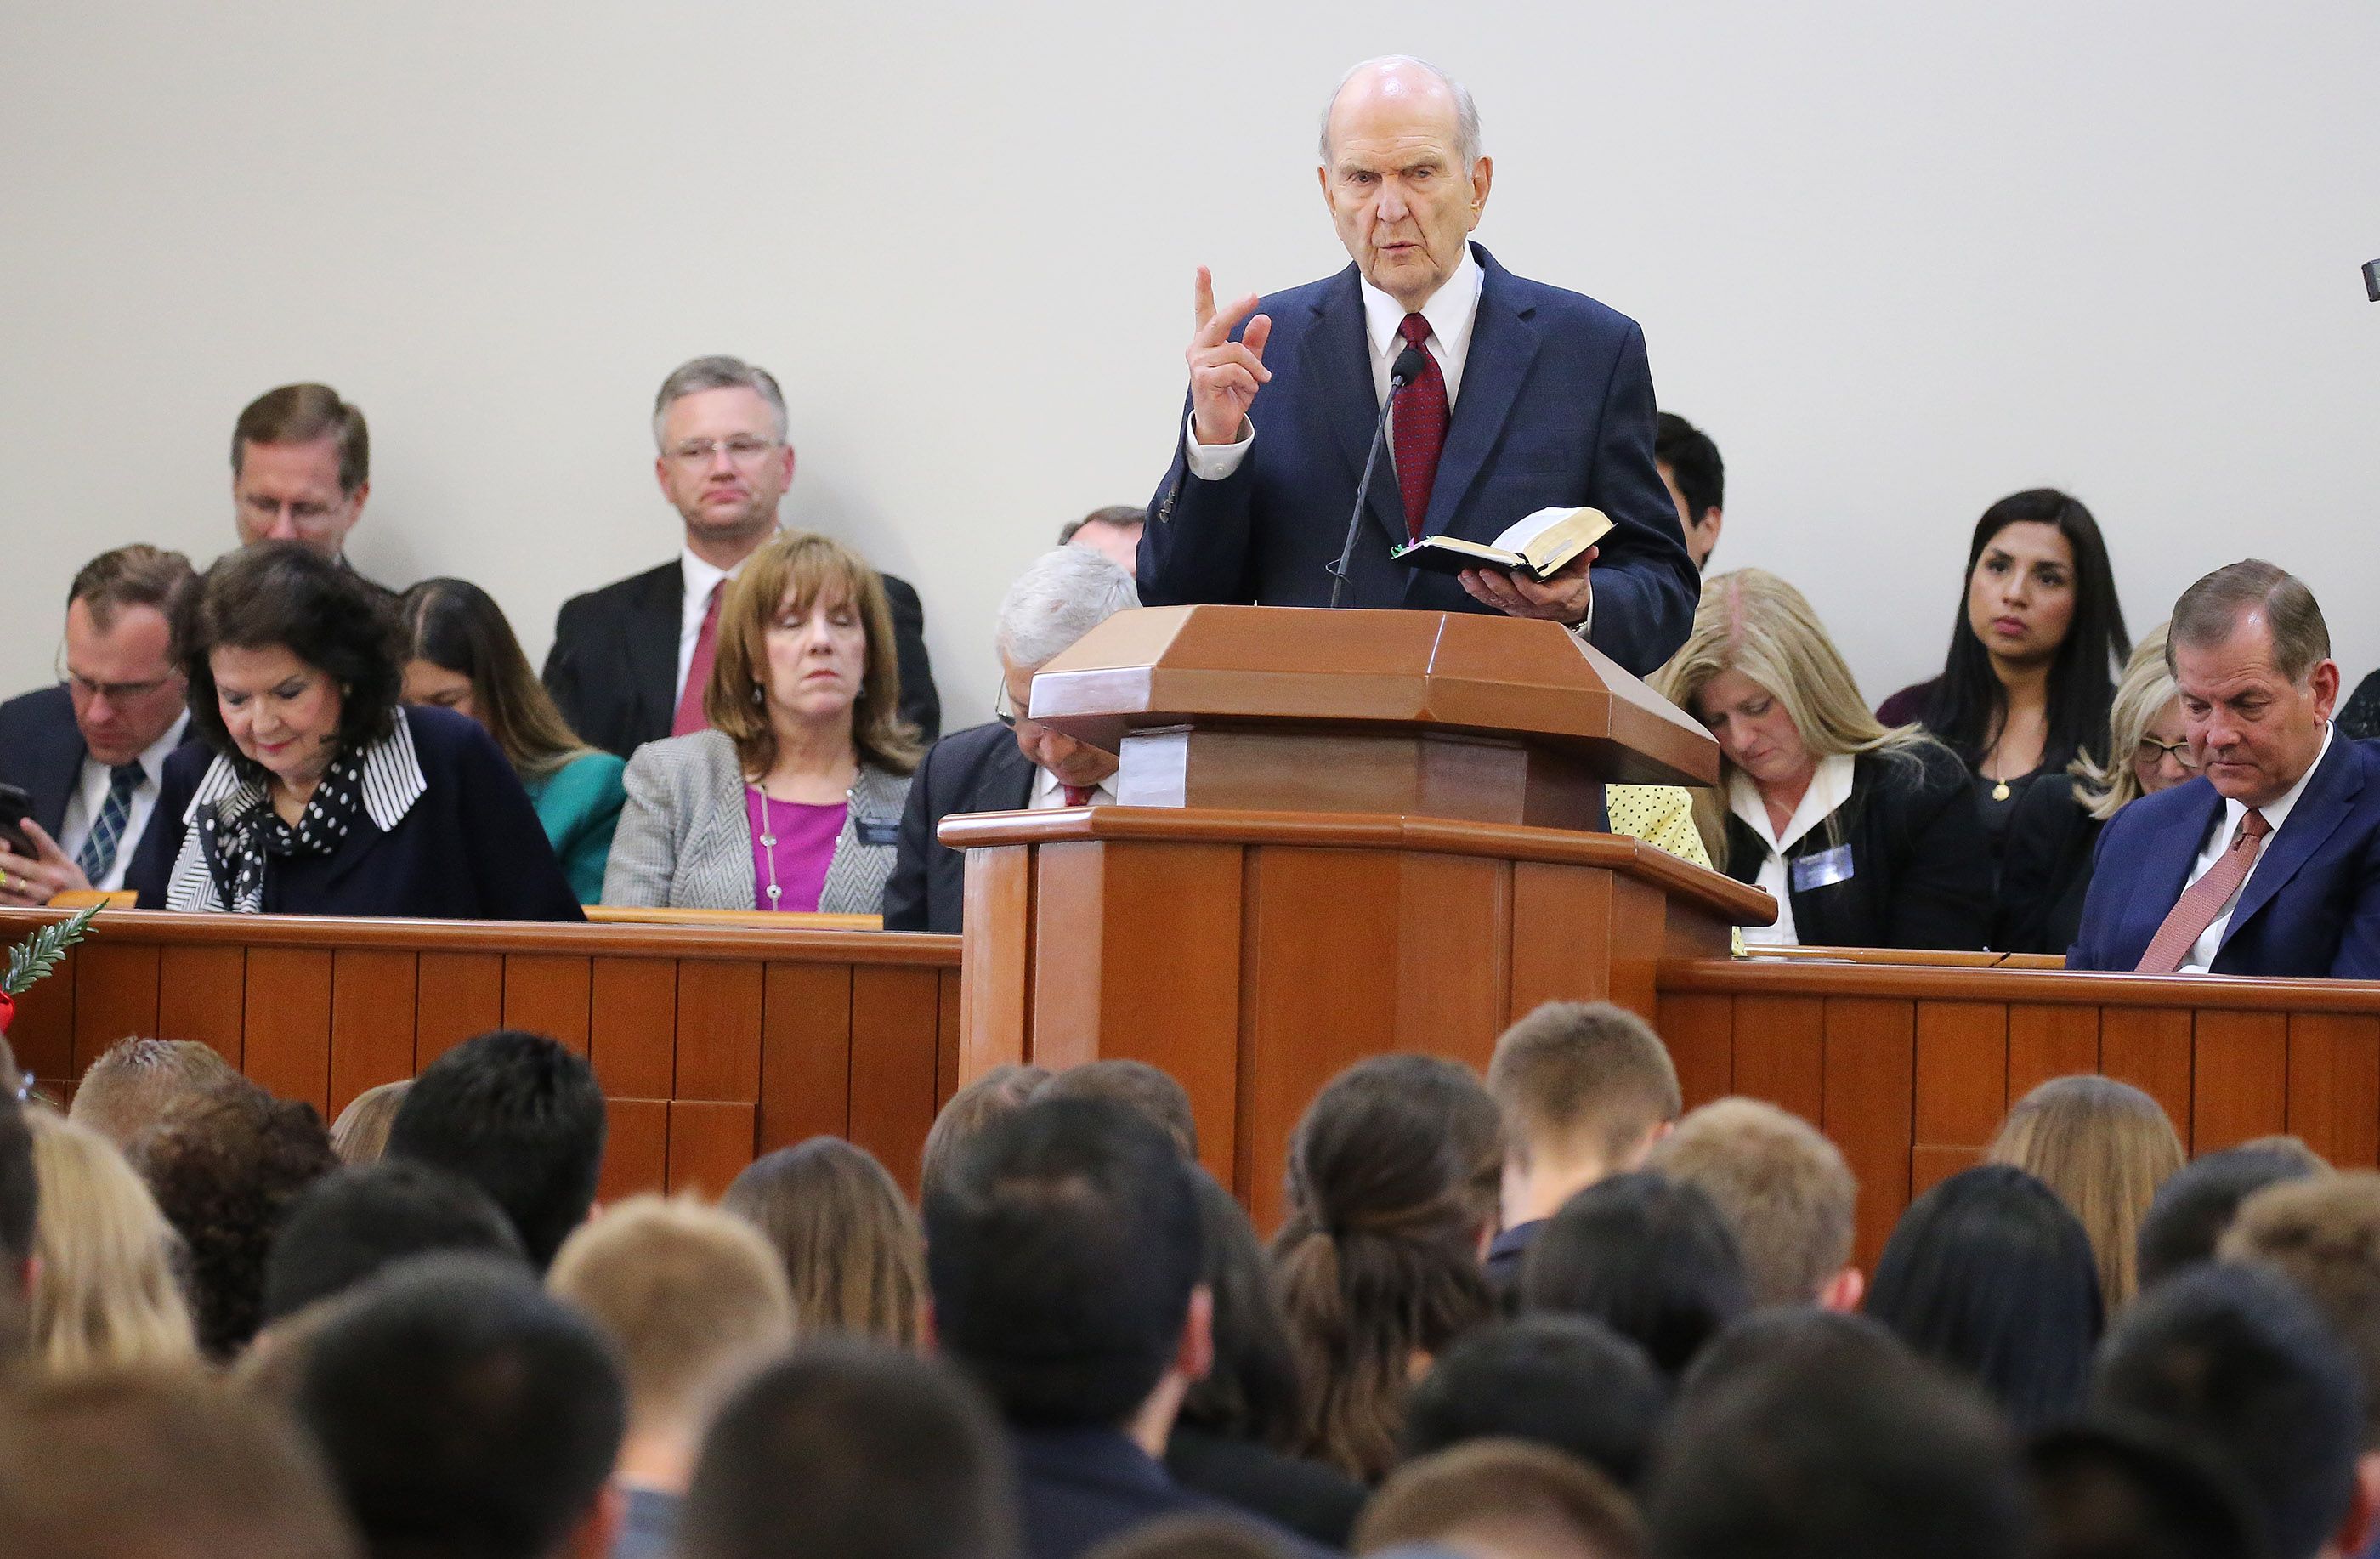 President Russell M. Nelson of The Church of Jesus Christ of Latter-day Saints speaks during a missionary meeting in Lima, Peru, on Oct. 20, 2018.